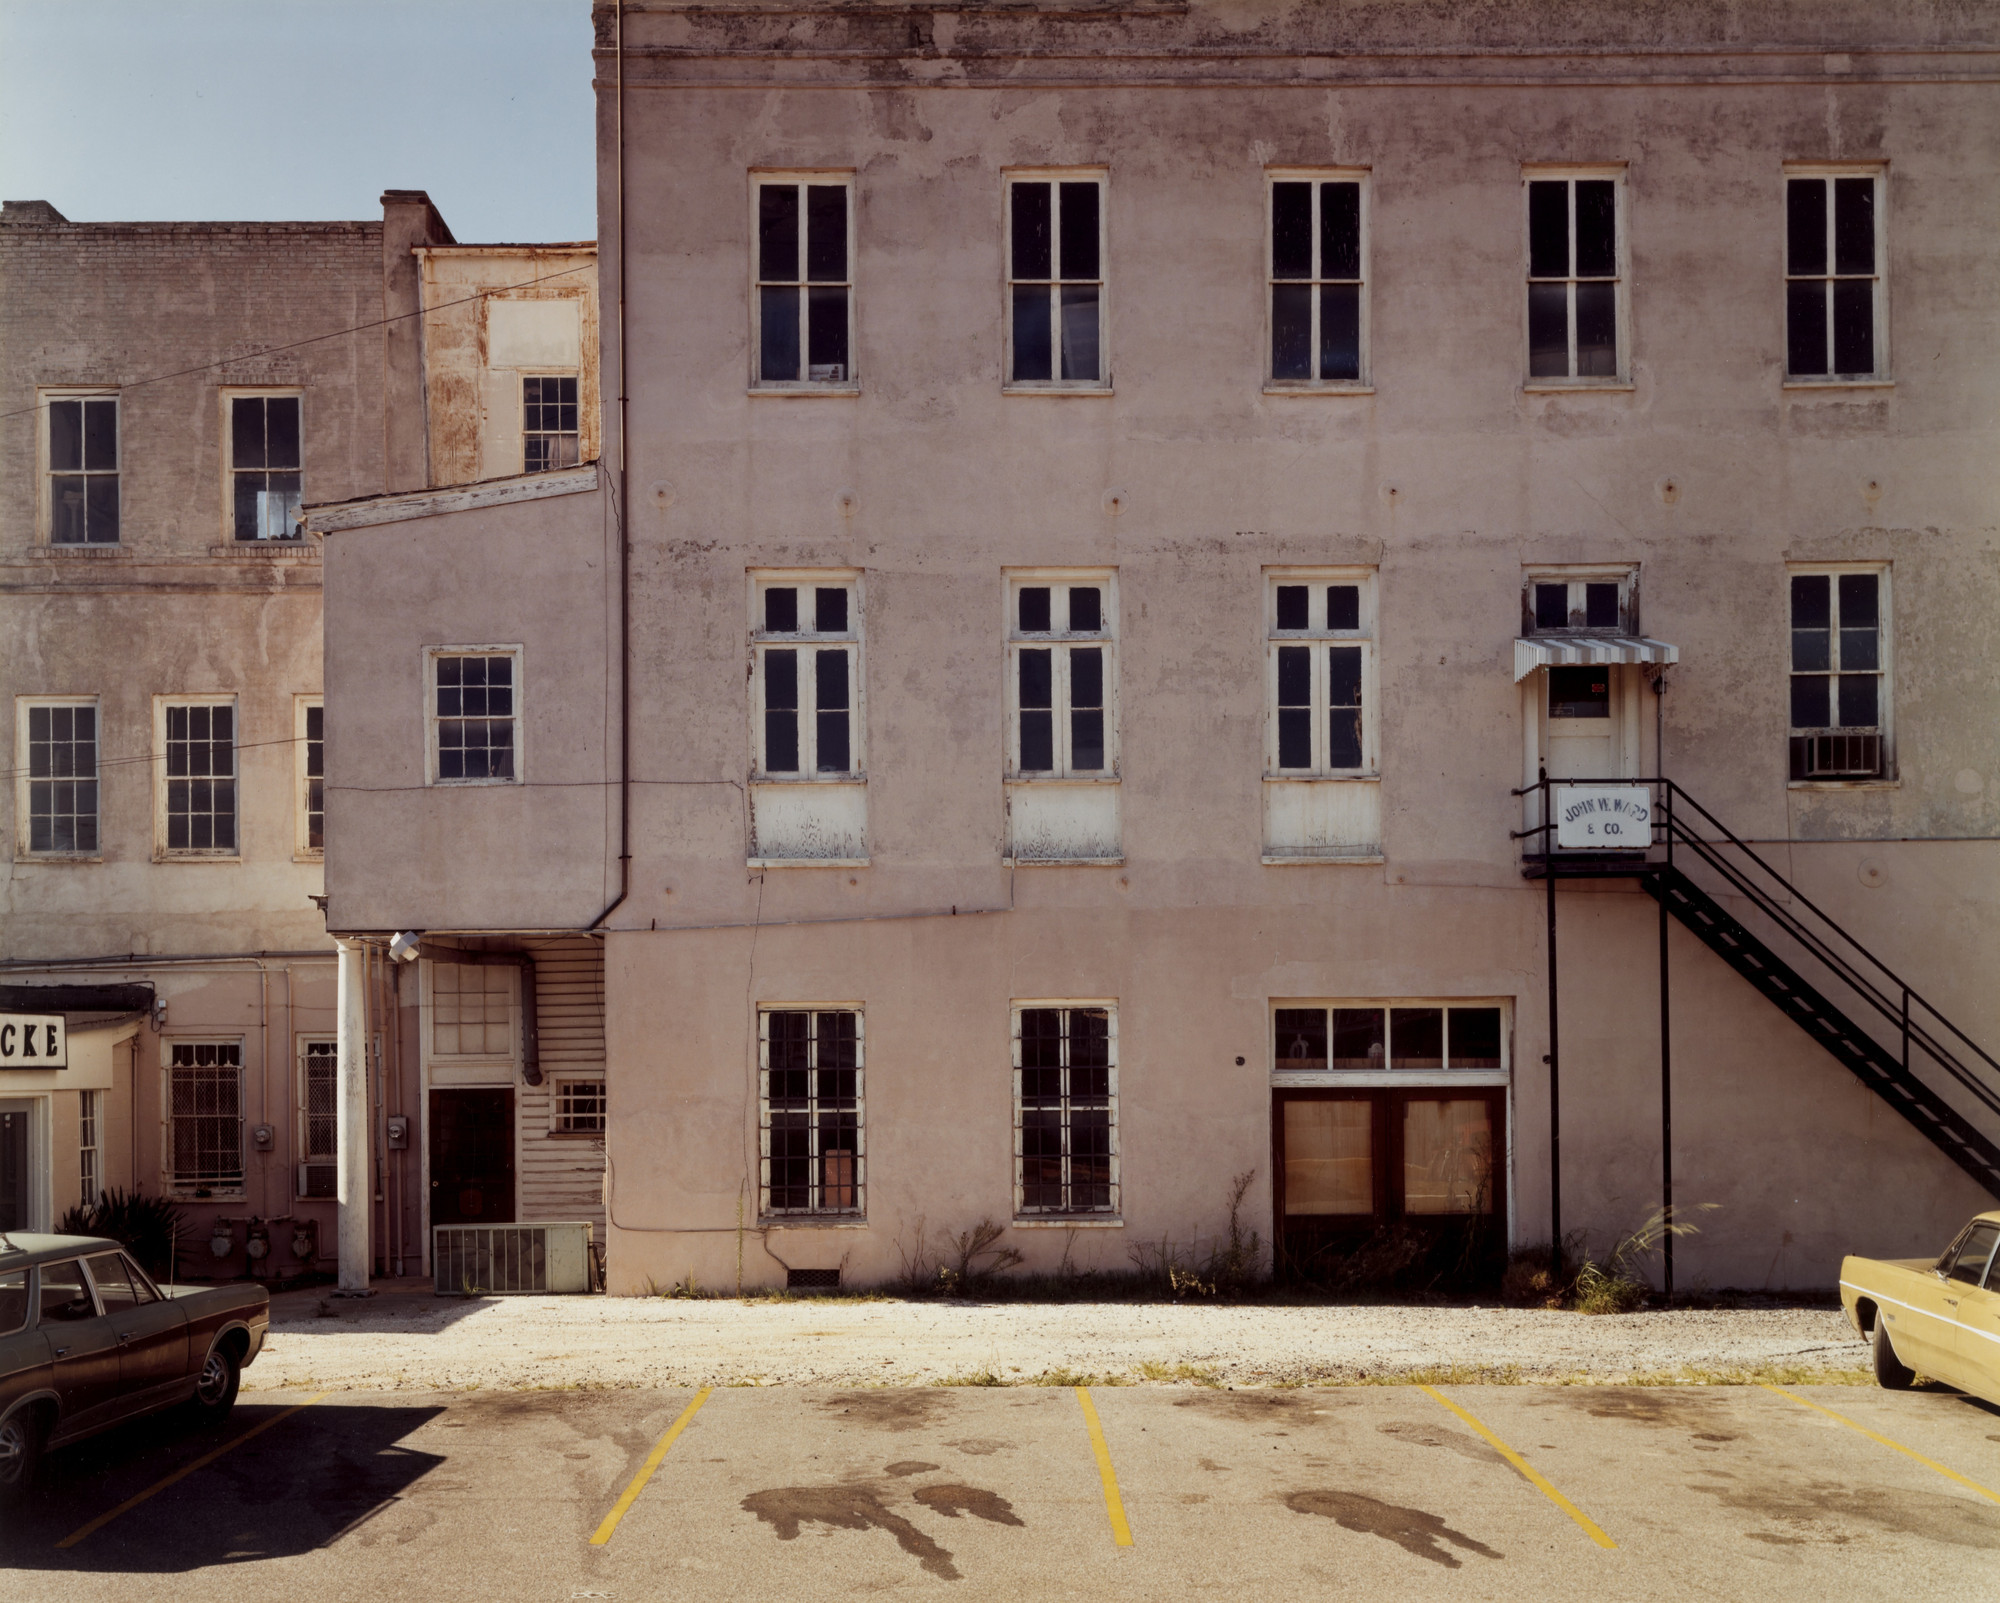 Stephen Shore. Meeting Street, Charleston, South Carolina, August 3, 1975. 1975